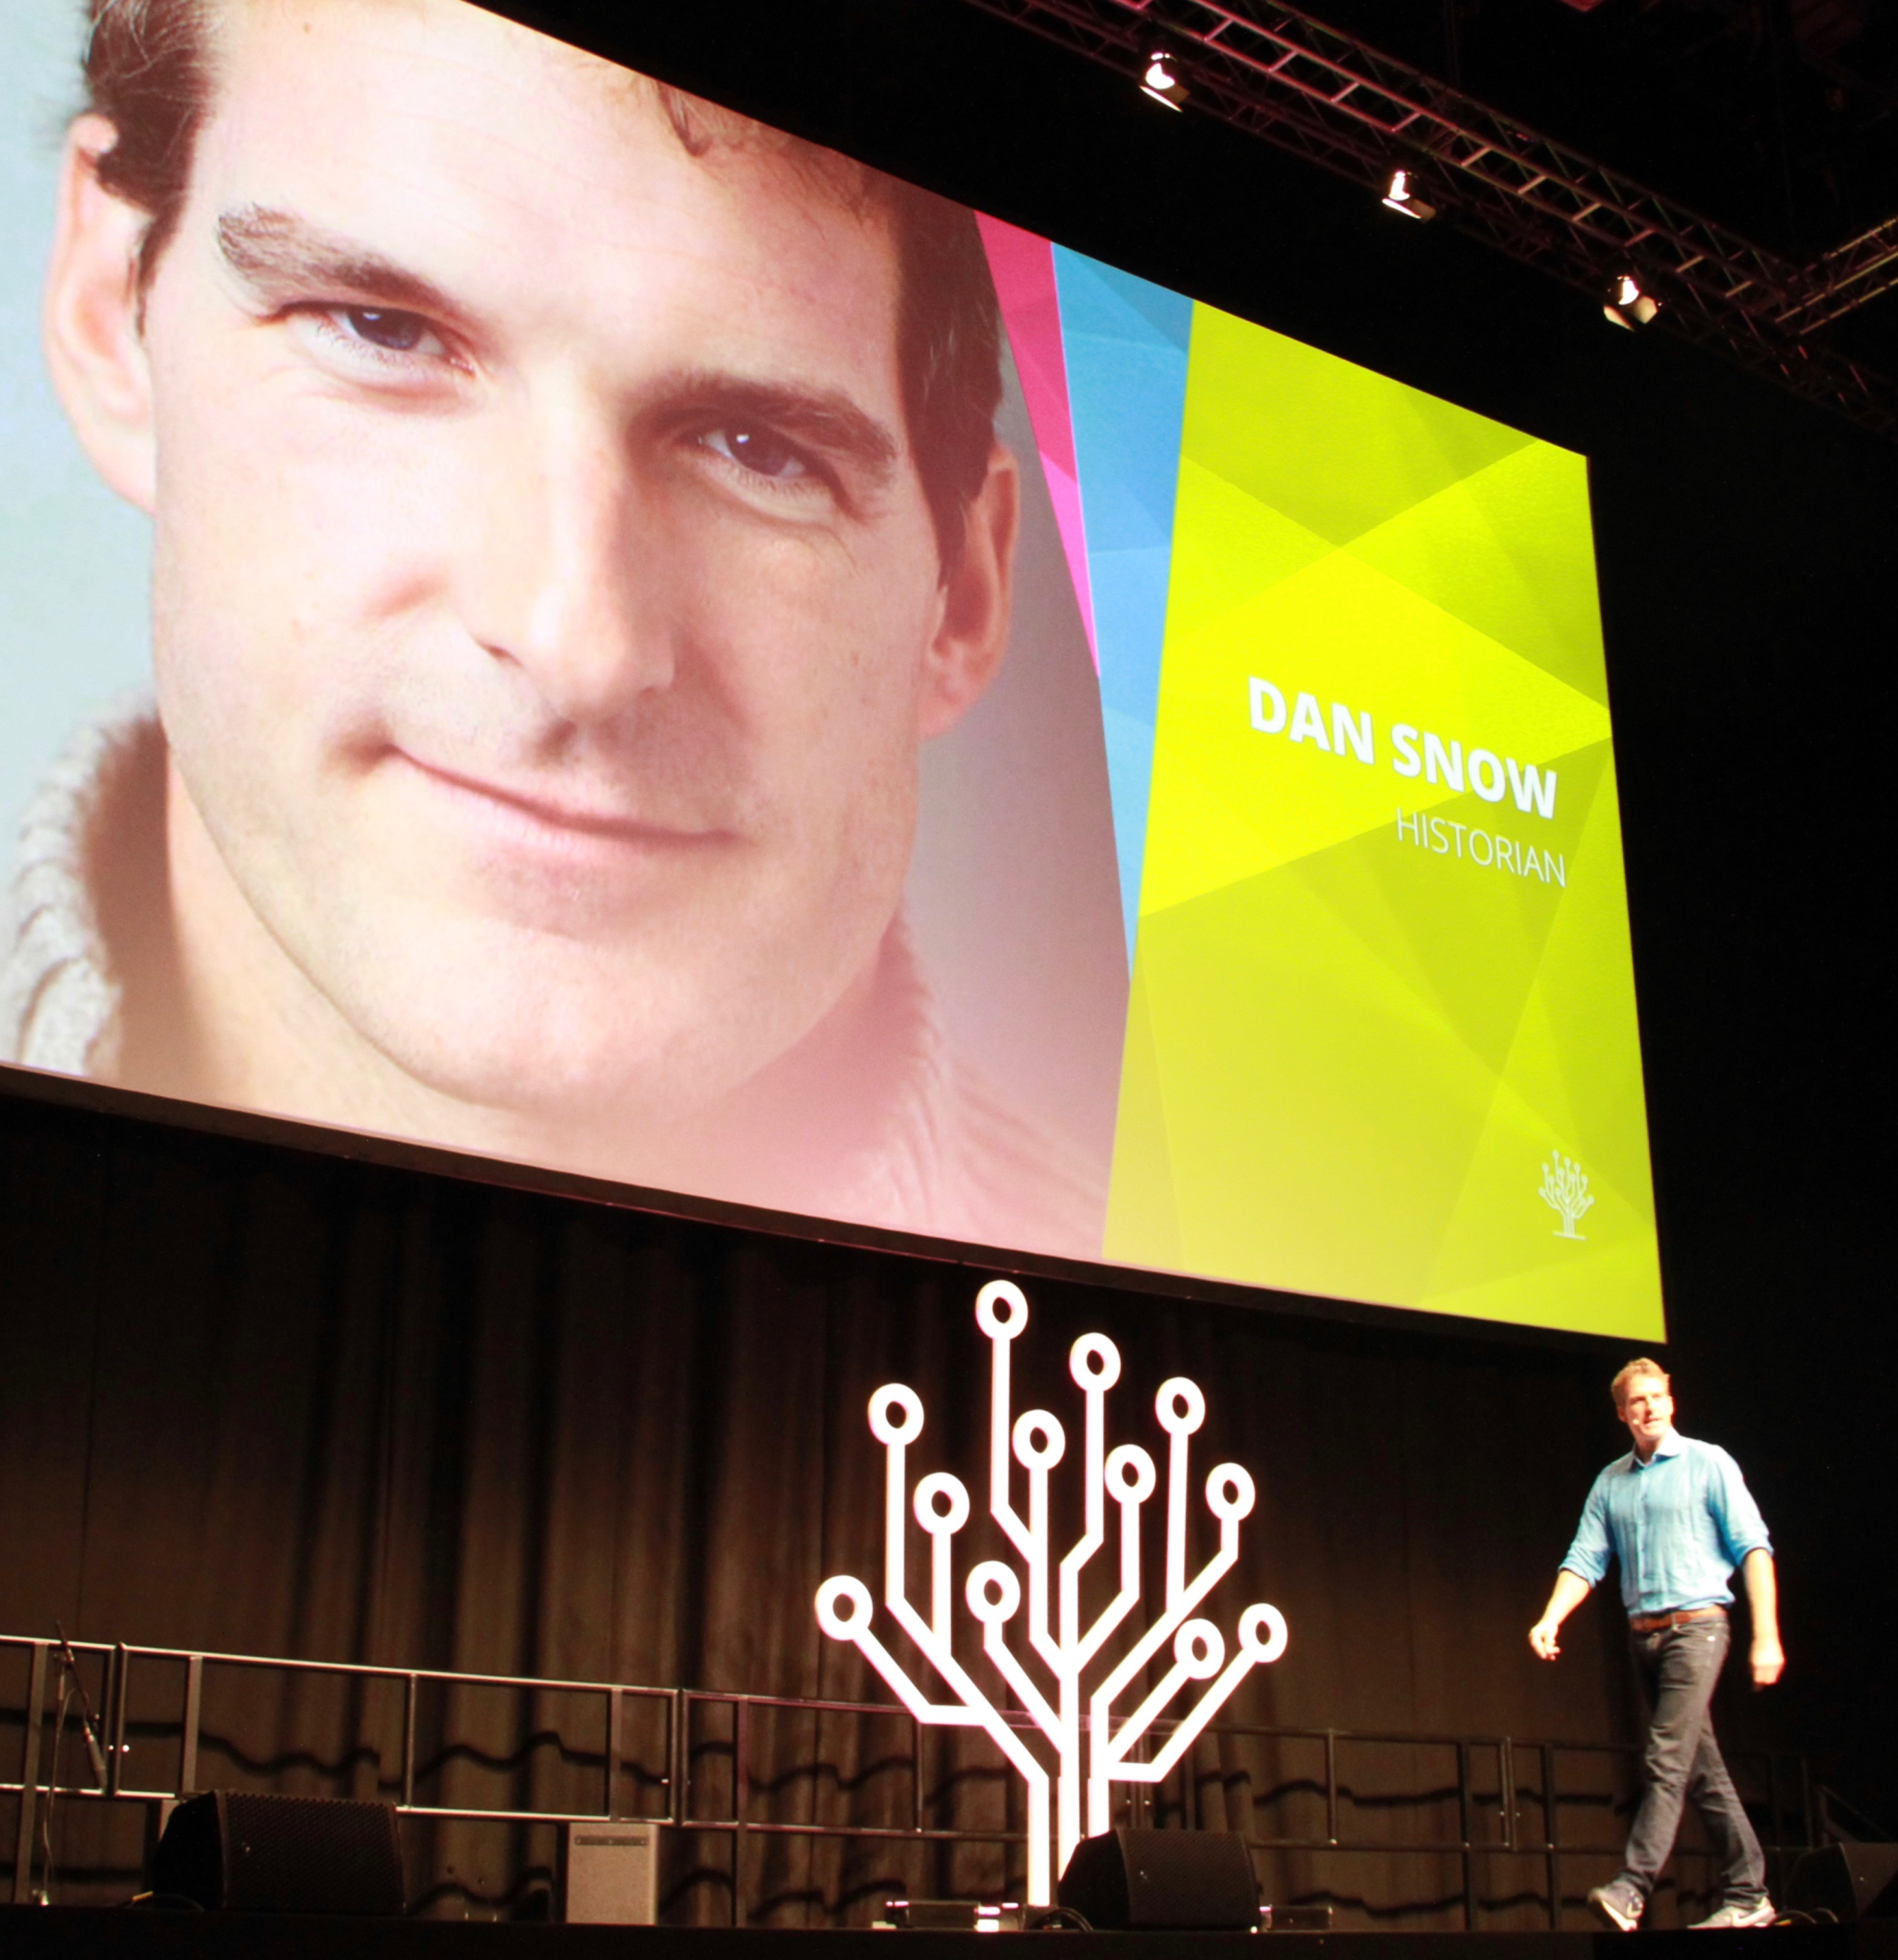 British historian and TV personality Dan Snow speaks during RootsTech London's General Keynote event Thursday, Oct. 24, 2019, in the London ExCel auditorium.